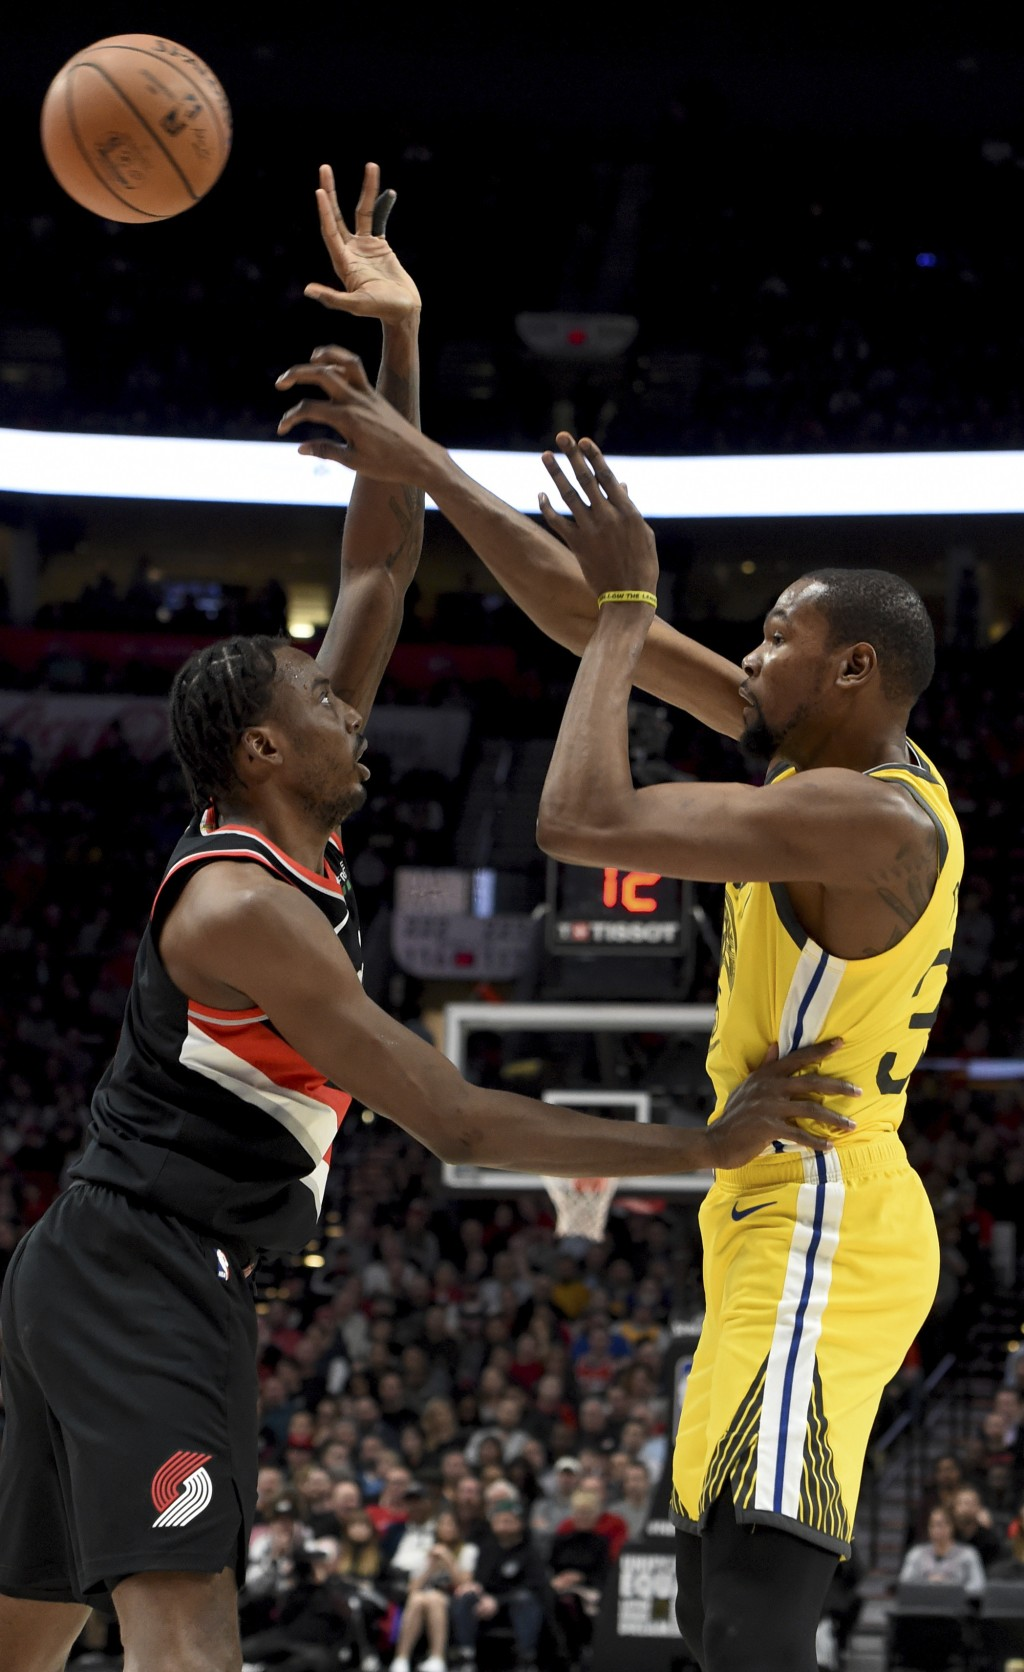 Golden State Warriors forward Kevin Durant, right, passes the ball over Portland Trail Blazers forward Al-Farouq Aminu during the first half of an NBA